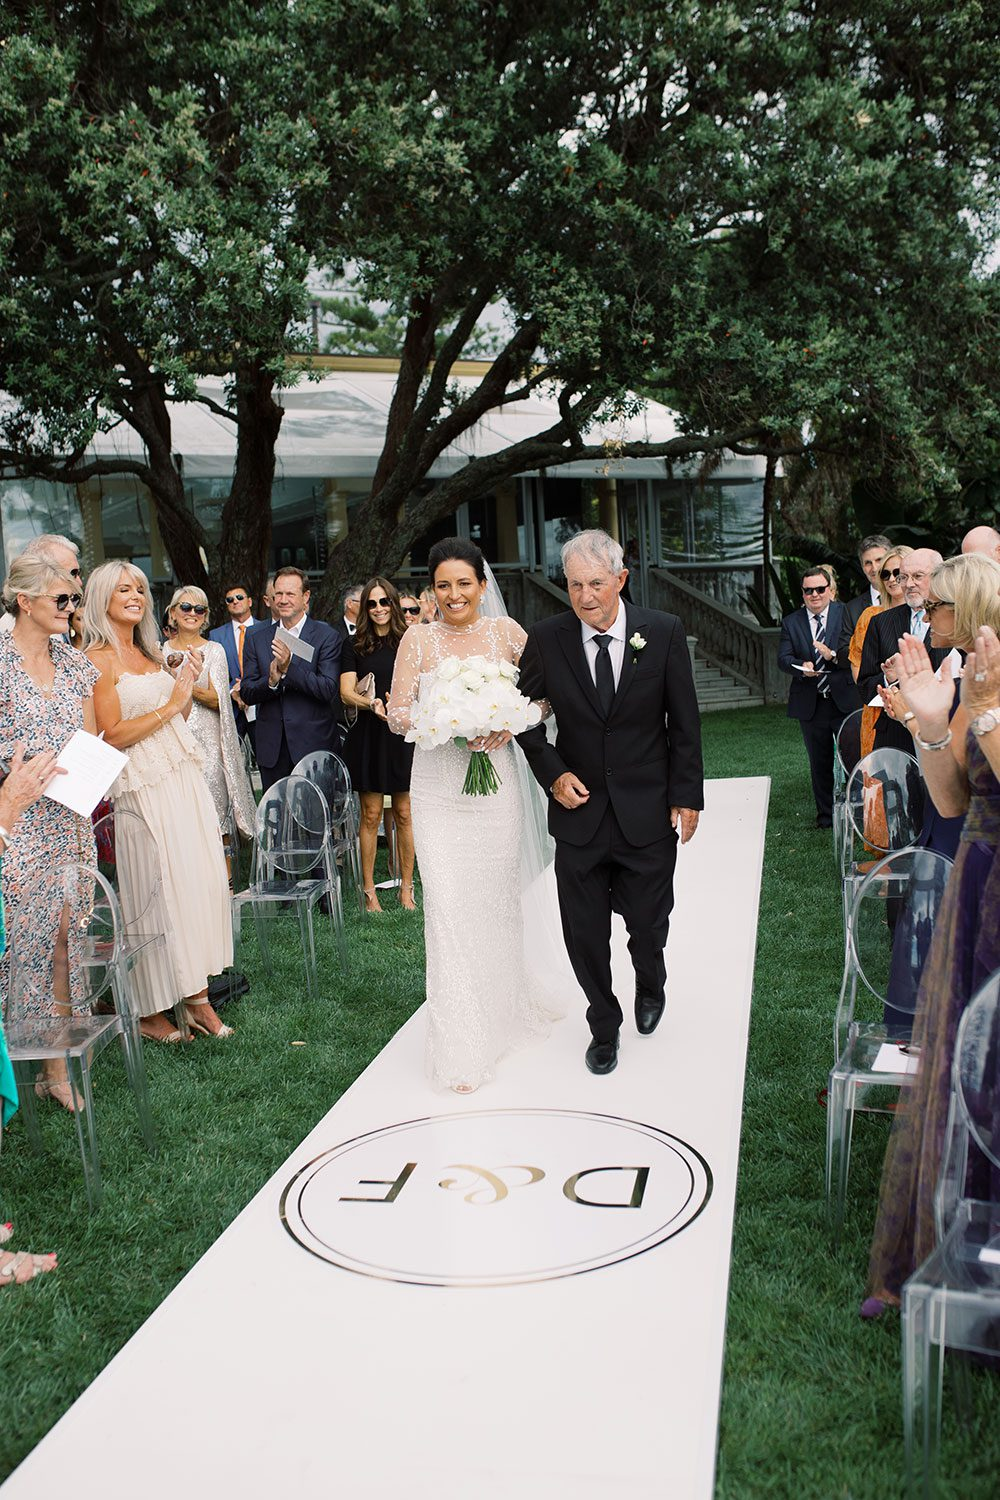 Bride wearing bespoke gown by Auckland wedding dress designer Vinka Design, with a high neckline and delicate spotted embroidery - walking down aisle